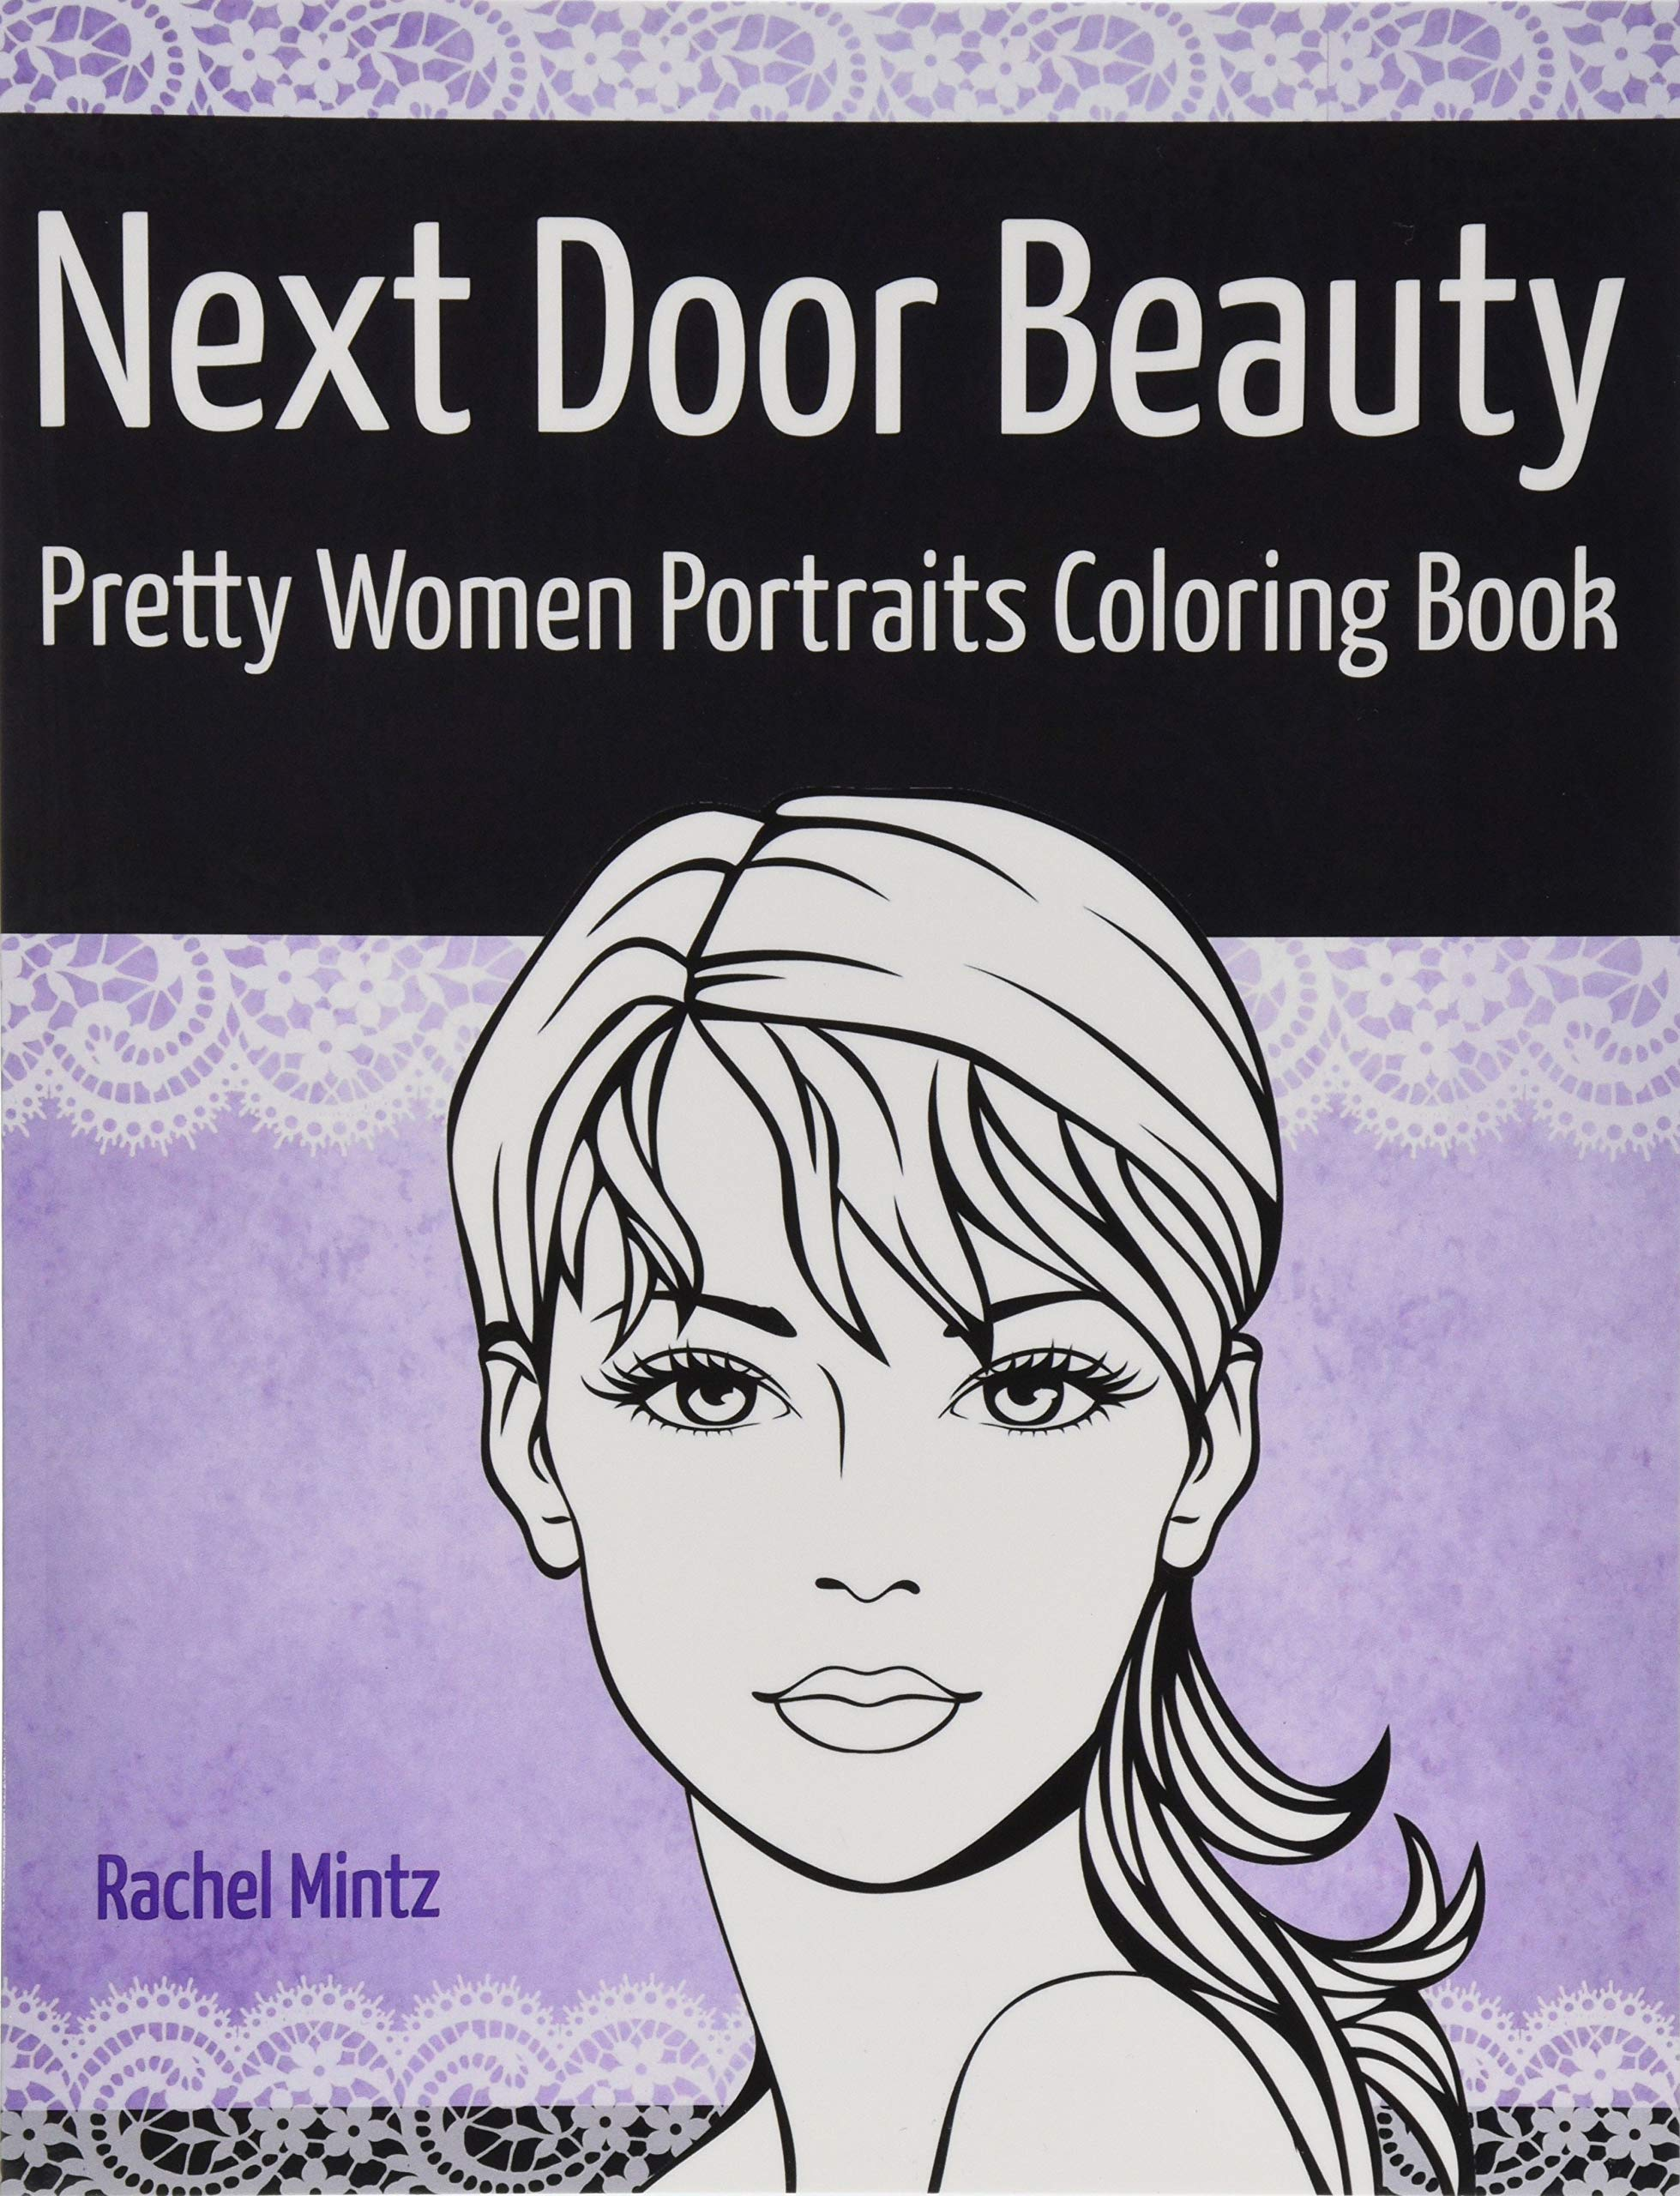 Libro: Next Door Beauty - Pretty Women Portraits